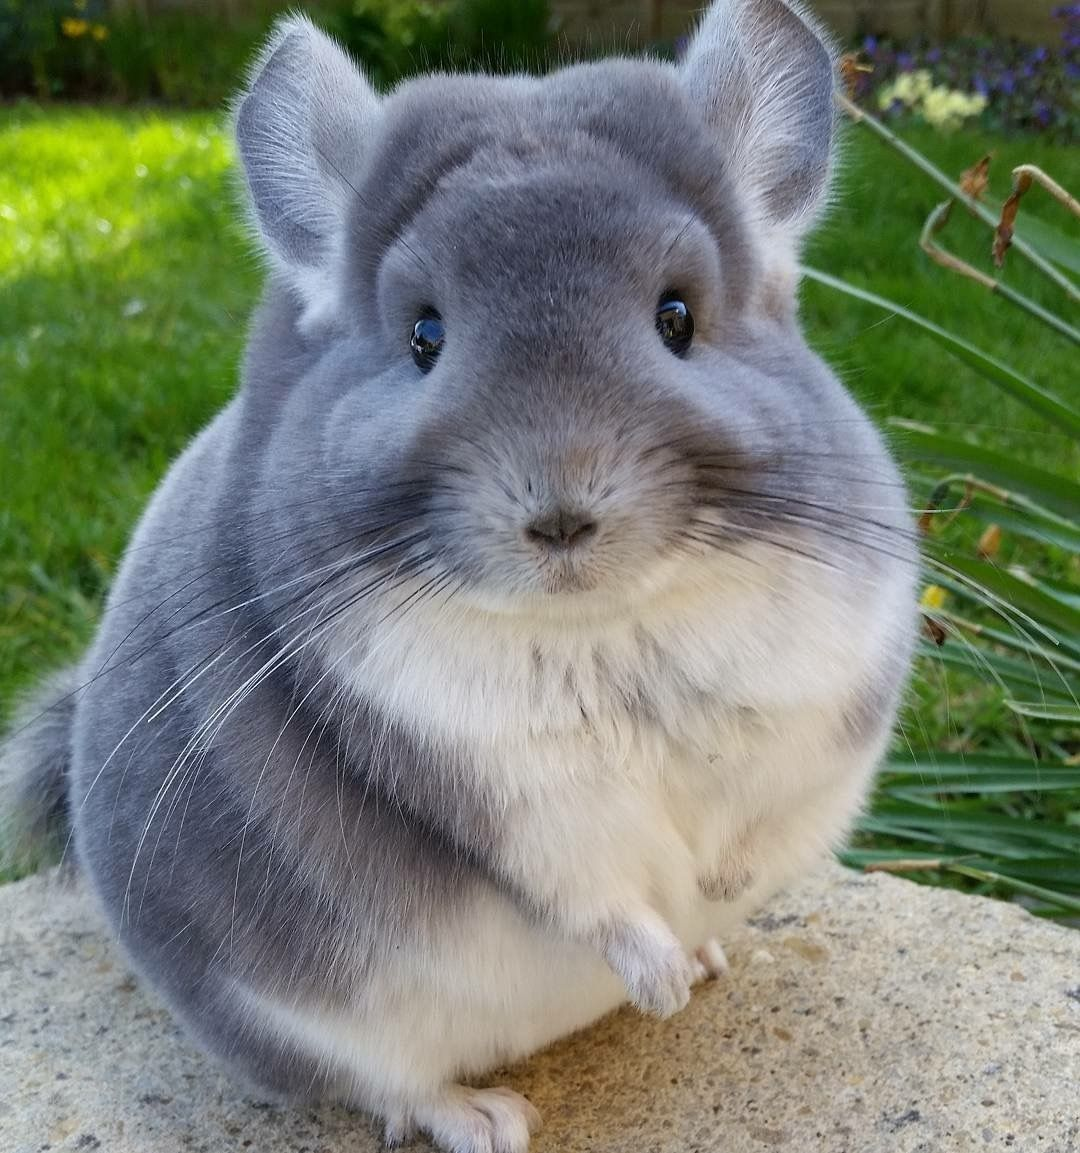 Chinchillas' butts are so round and fluffy, they look